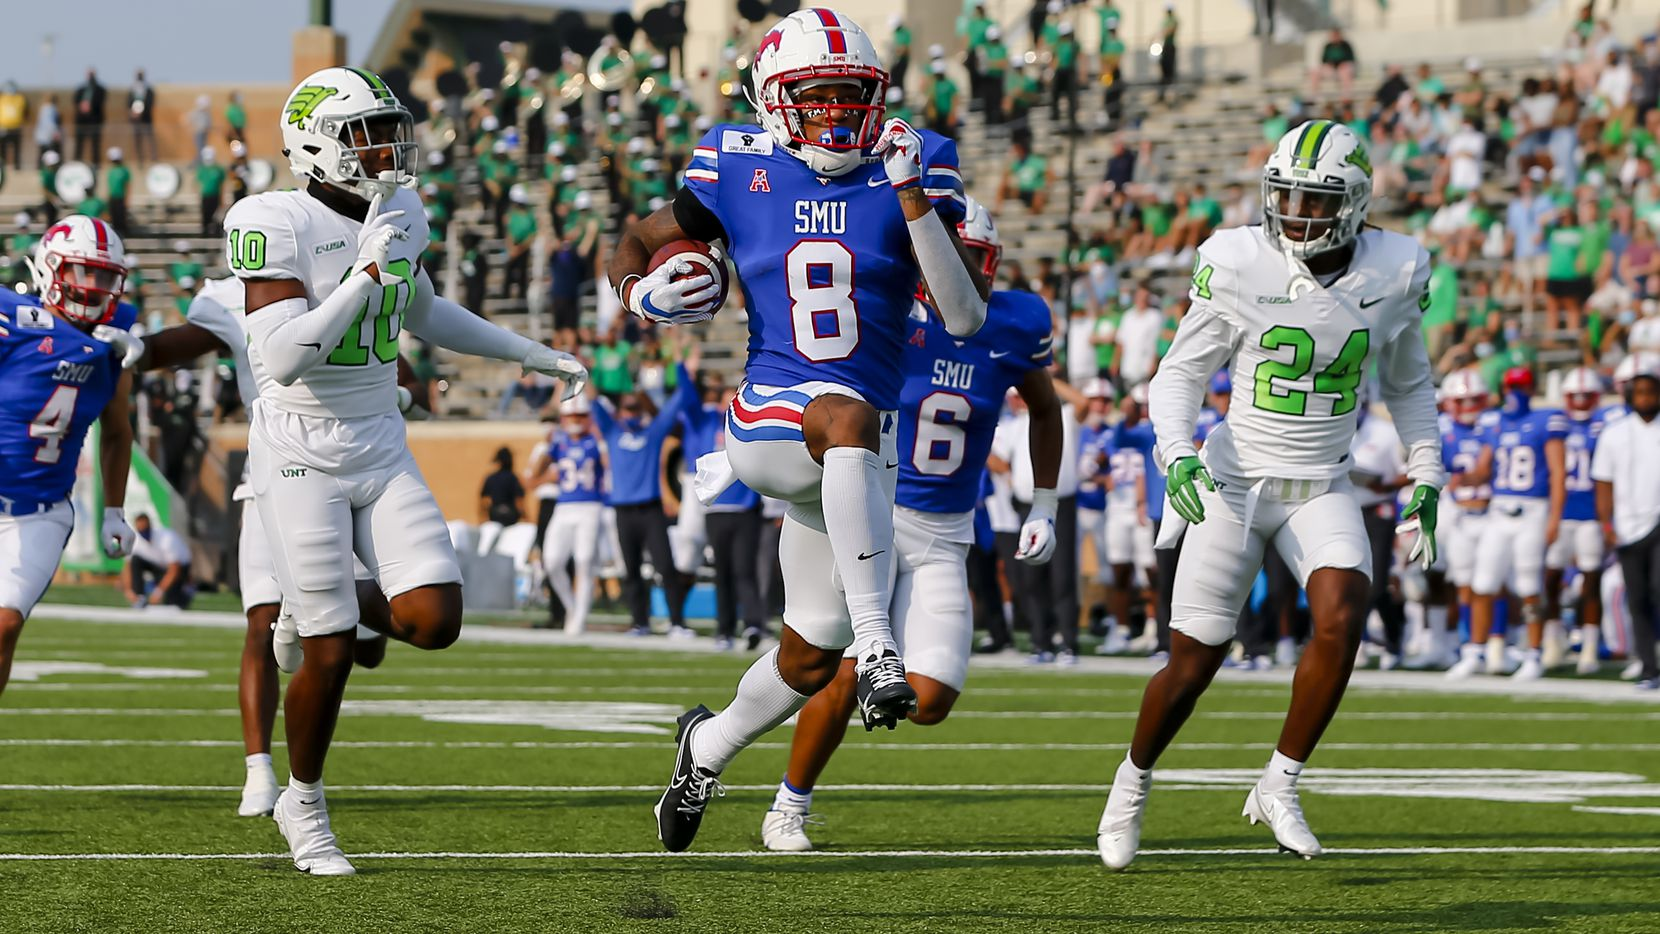 SMU wide receiver Reggie Roberson Jr. (8) scores a touchdown during a game against North Texas on Saturday, Sept. 19, 2020, at Apogee Stadium in Denton.